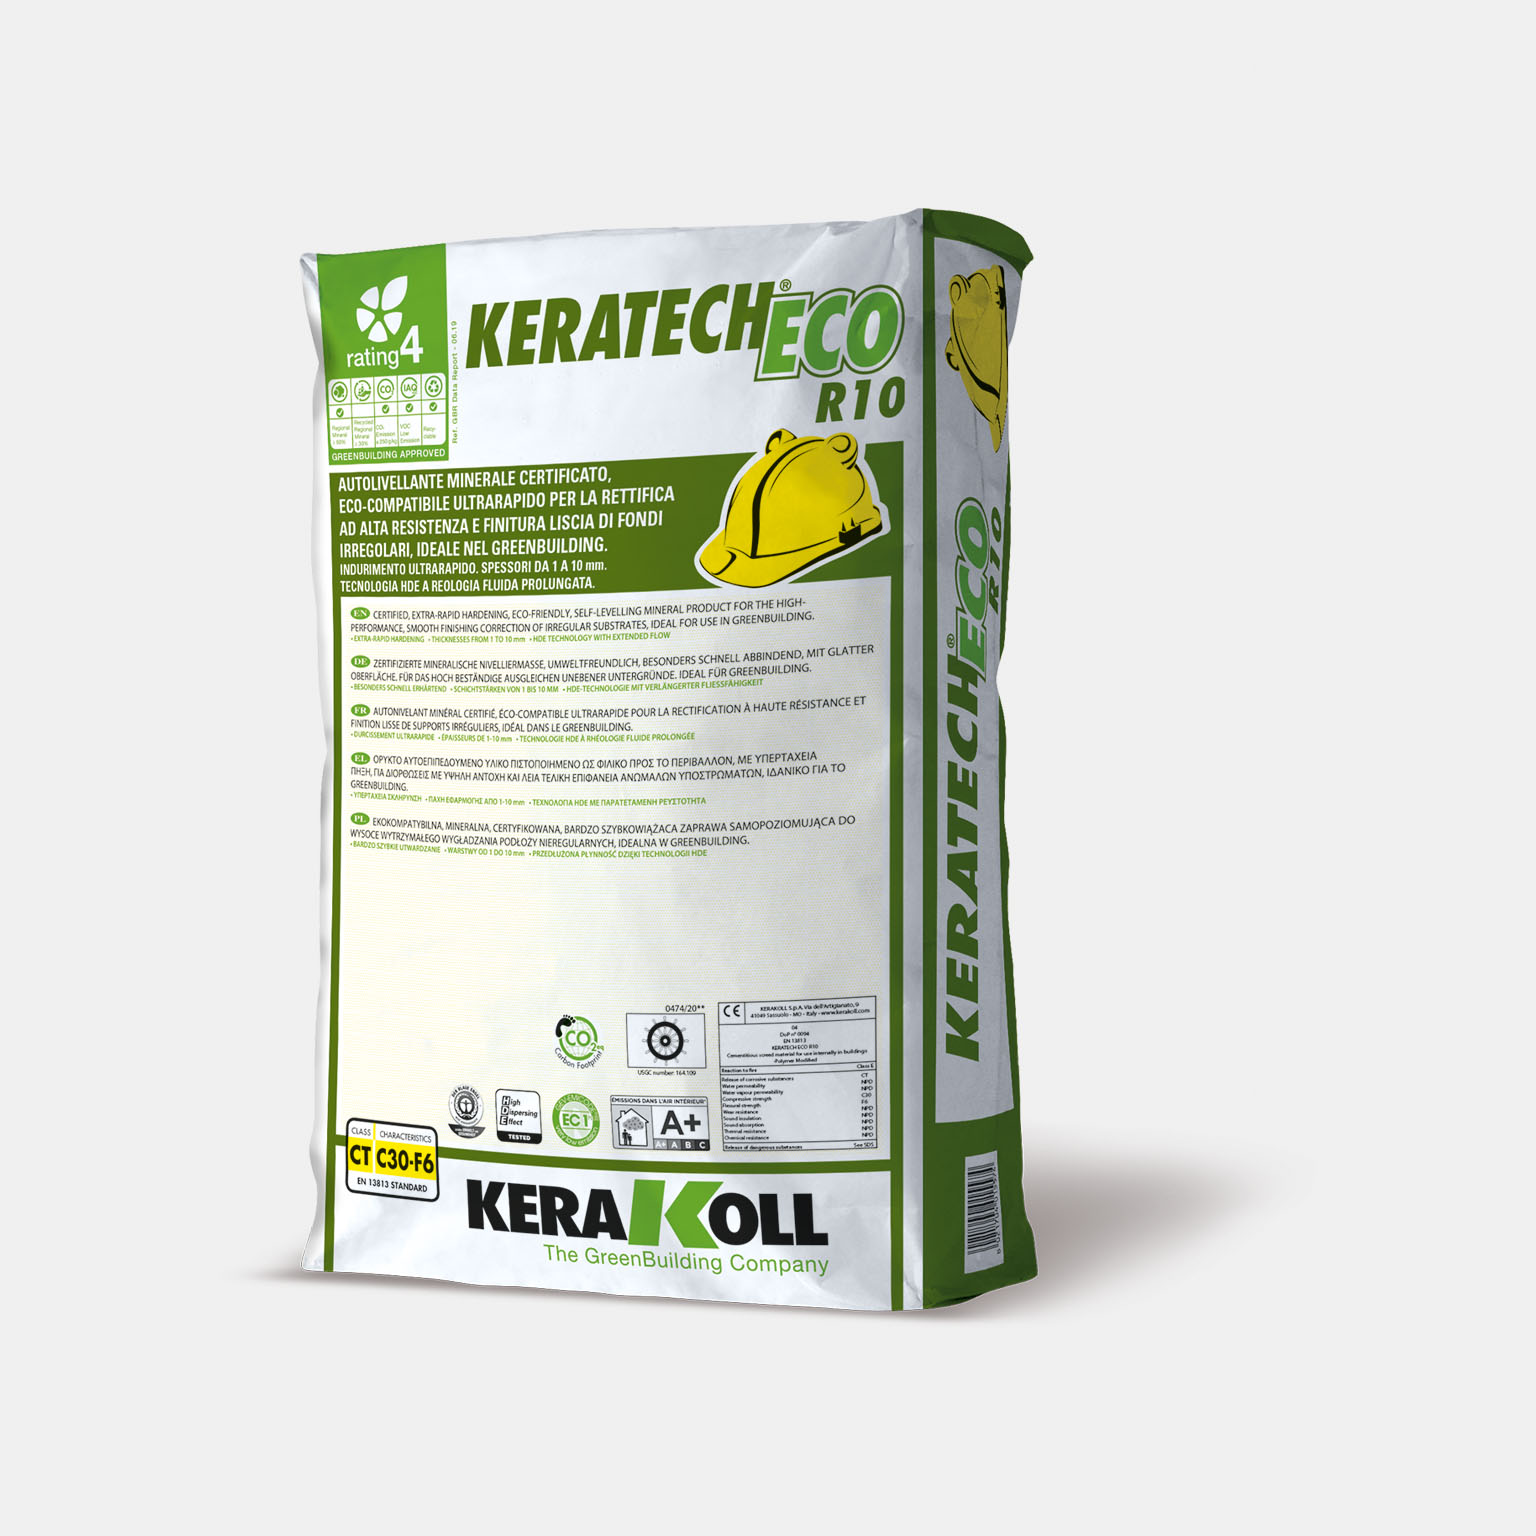 Keratech Eco R10 - immagine pack